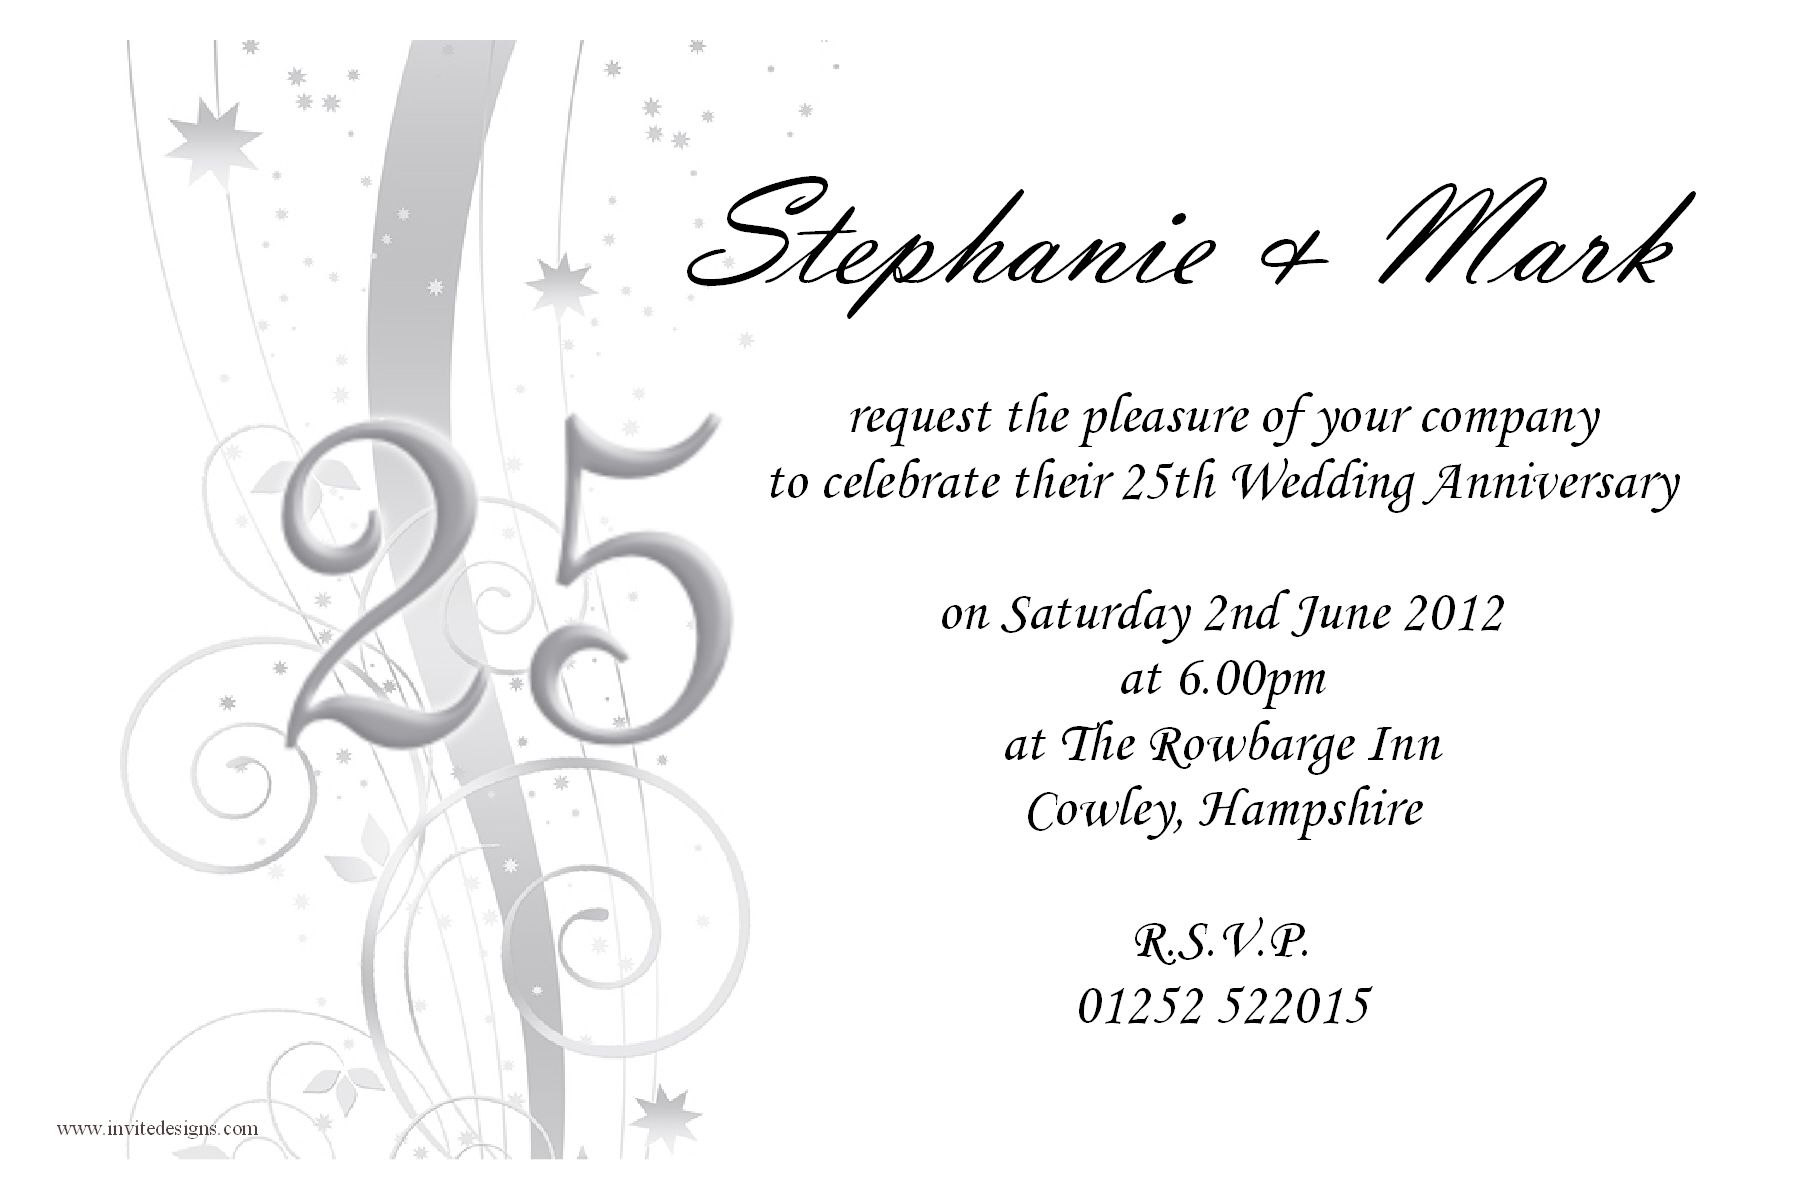 Templates For 25th Wedding Anniversary Invitations